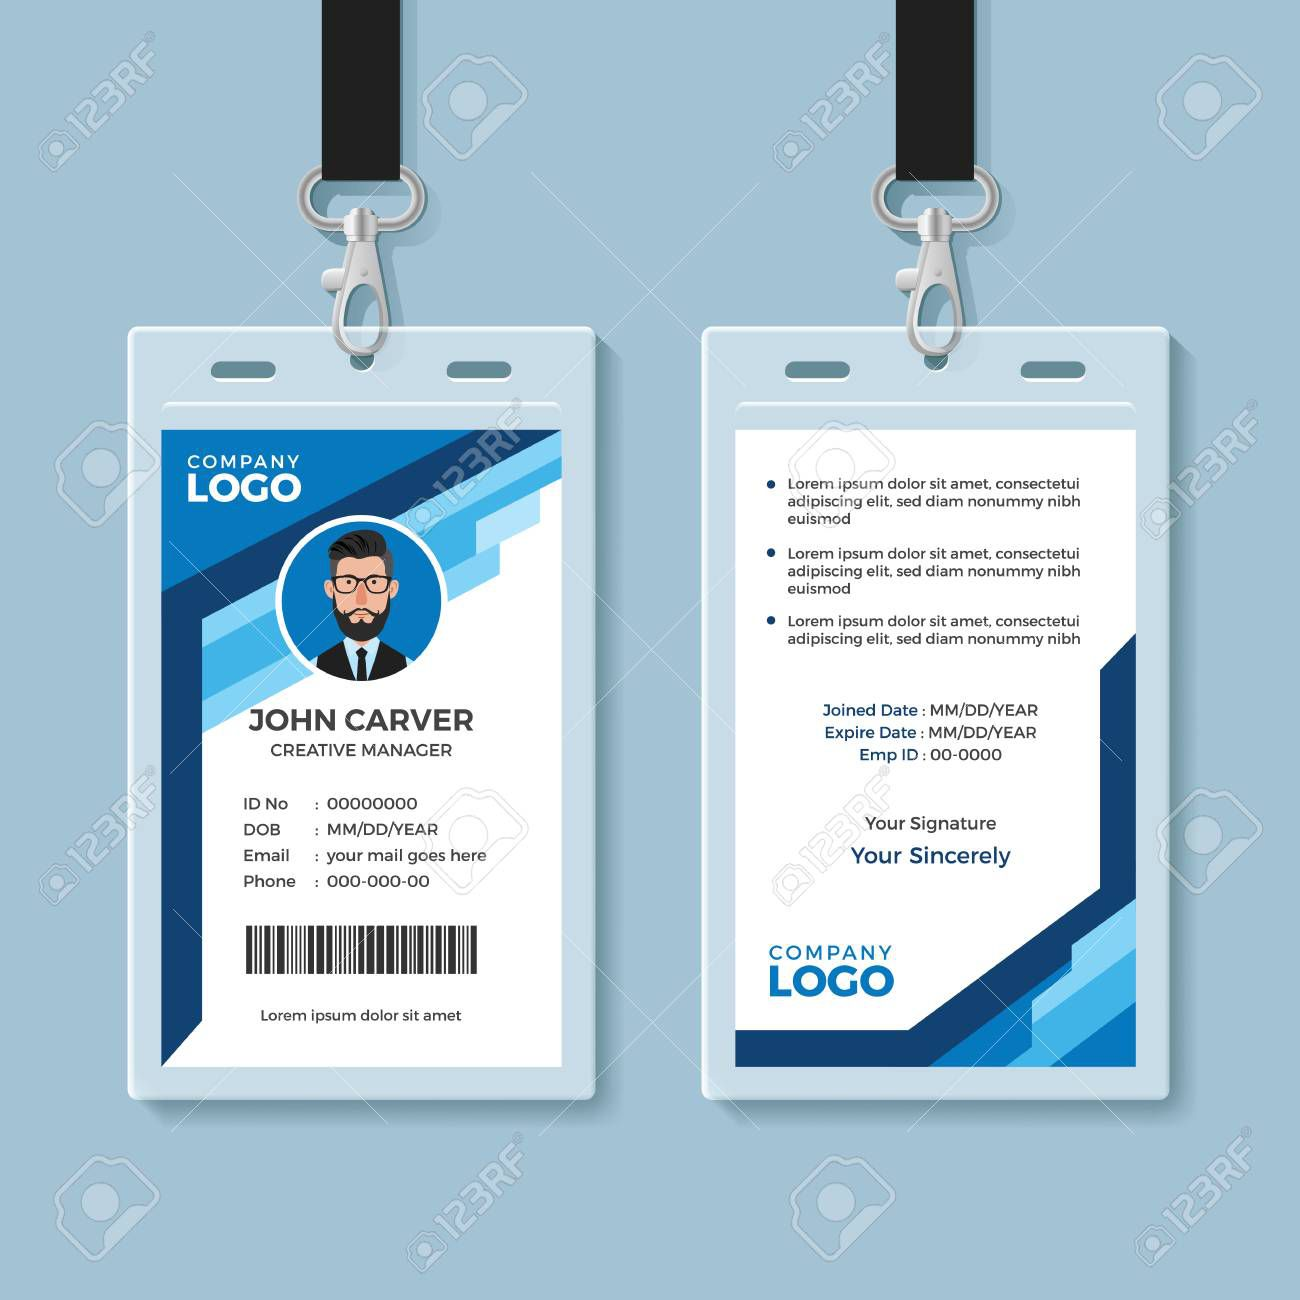 002 Phenomenal Employee Id Badge Template Highest Quality  Avery Card Free Download WordFull